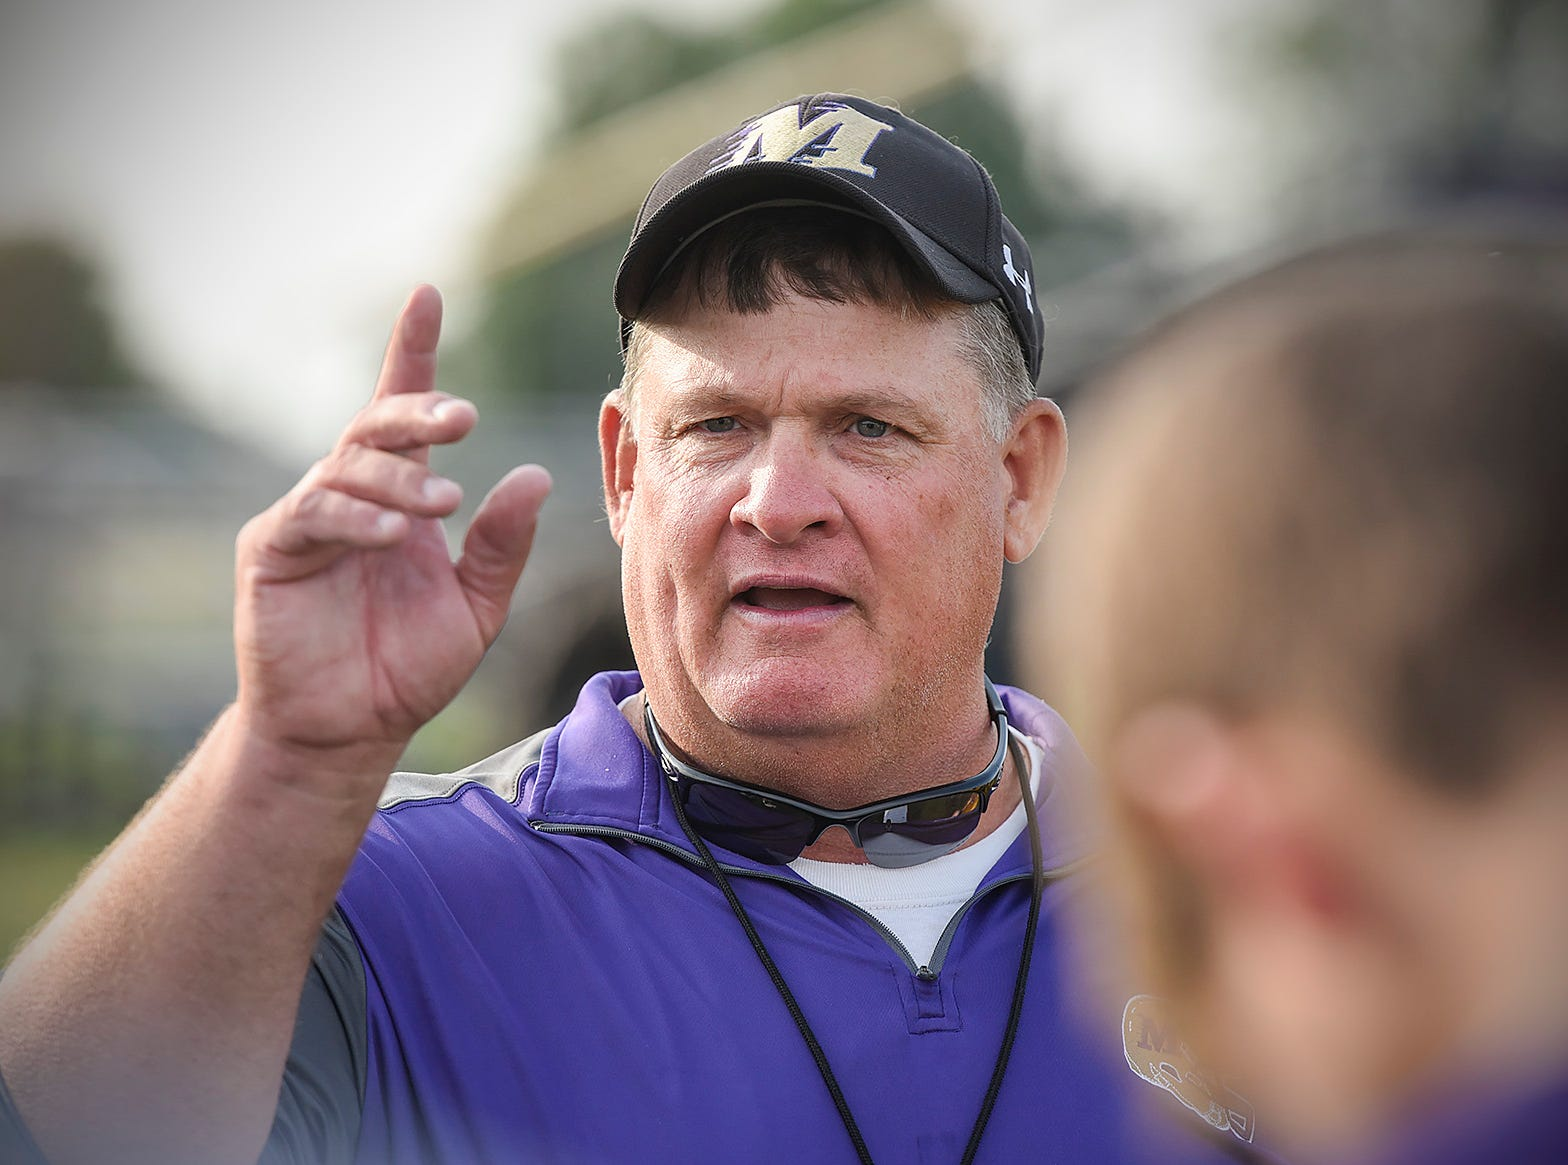 Melrose coach Chuck Noll works with players Wednesday, Aug. 15, during practice.